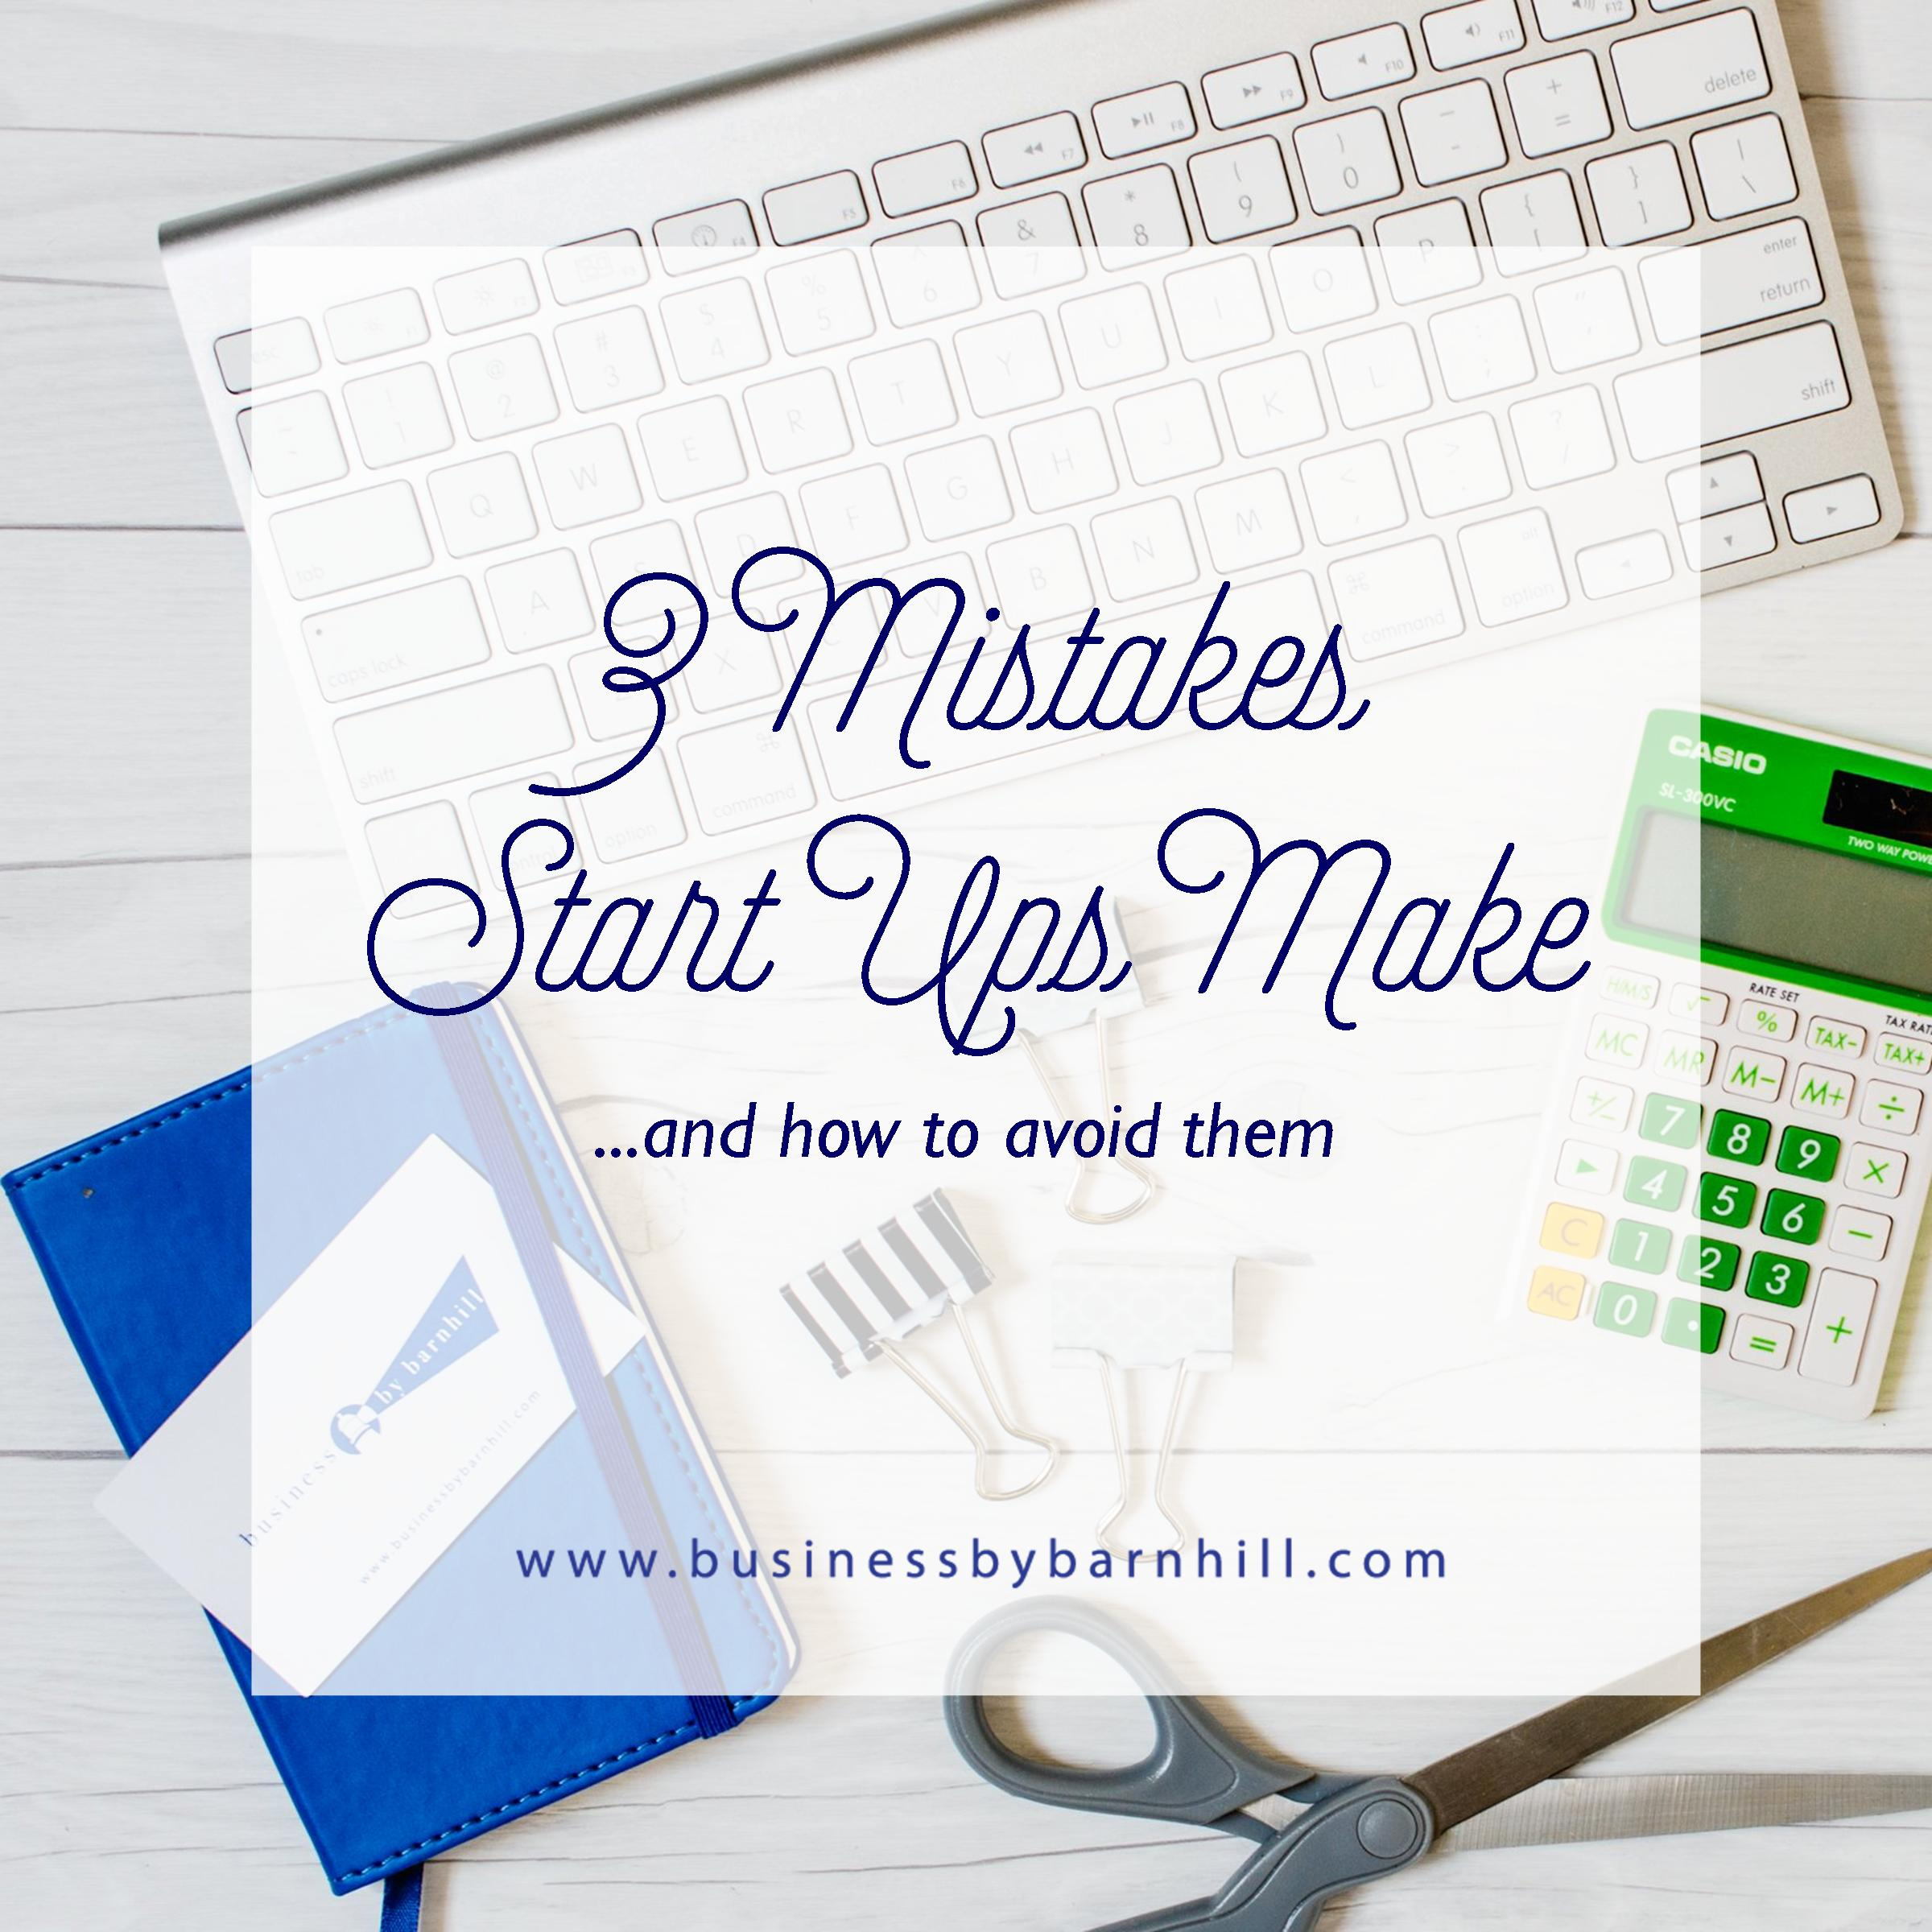 business by barnhill 3 mistakes start ups make and how to avoid.jpg